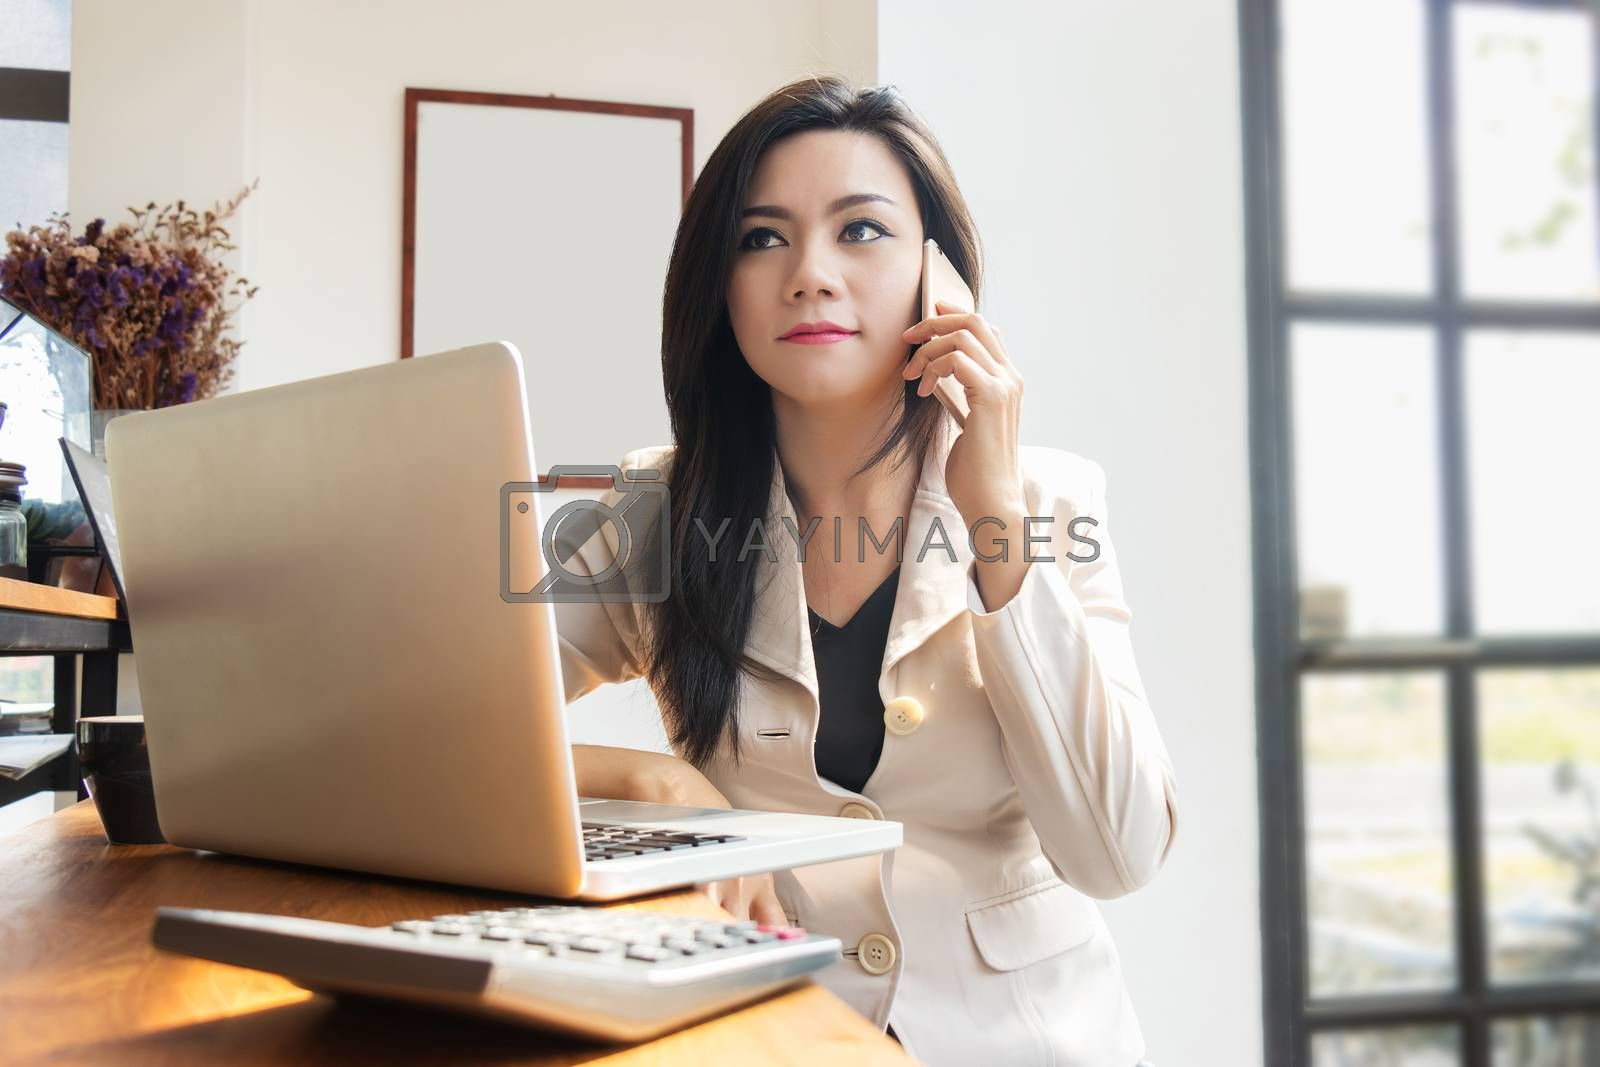 Asian business woman working with laptop notebook and use mobile smartphone for contact communication with colleagues. implementation and coordination by using modern technology